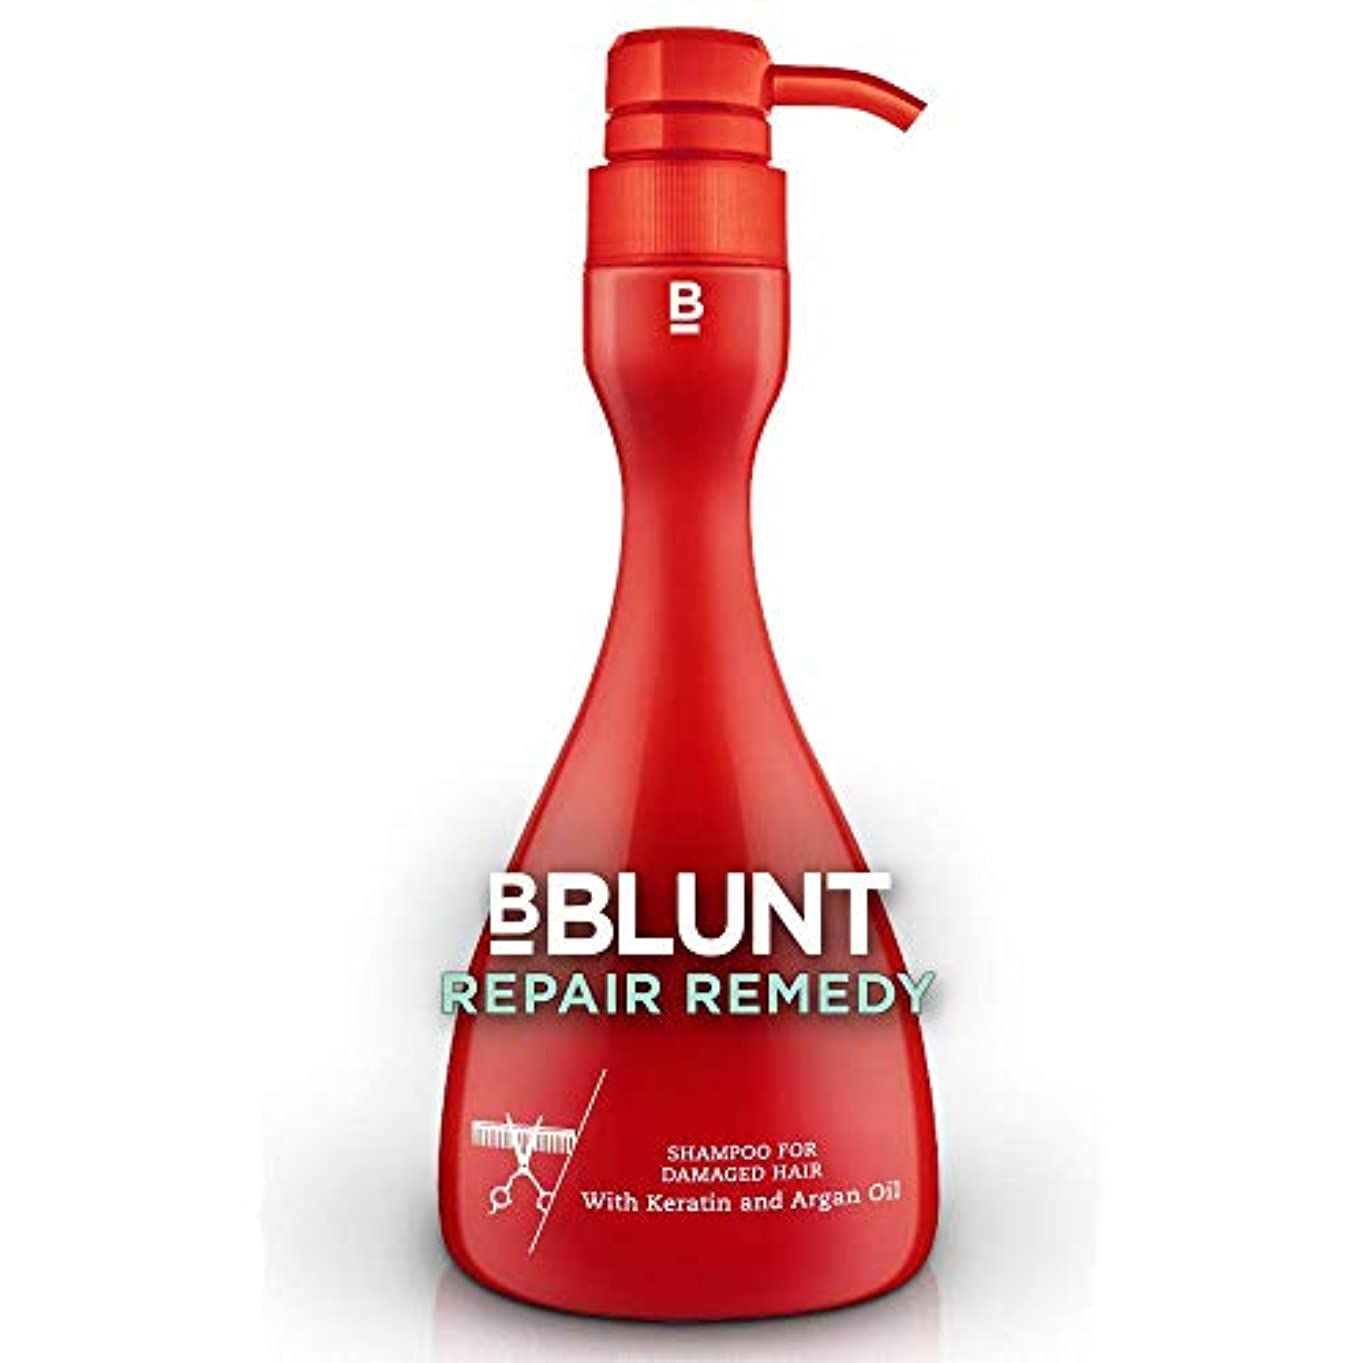 そこデコレーション励起BBLUNT Repair Remedy Shampoo for Damaged Hair, 400ml Pump Bottle (Keratin and Argan Oil)